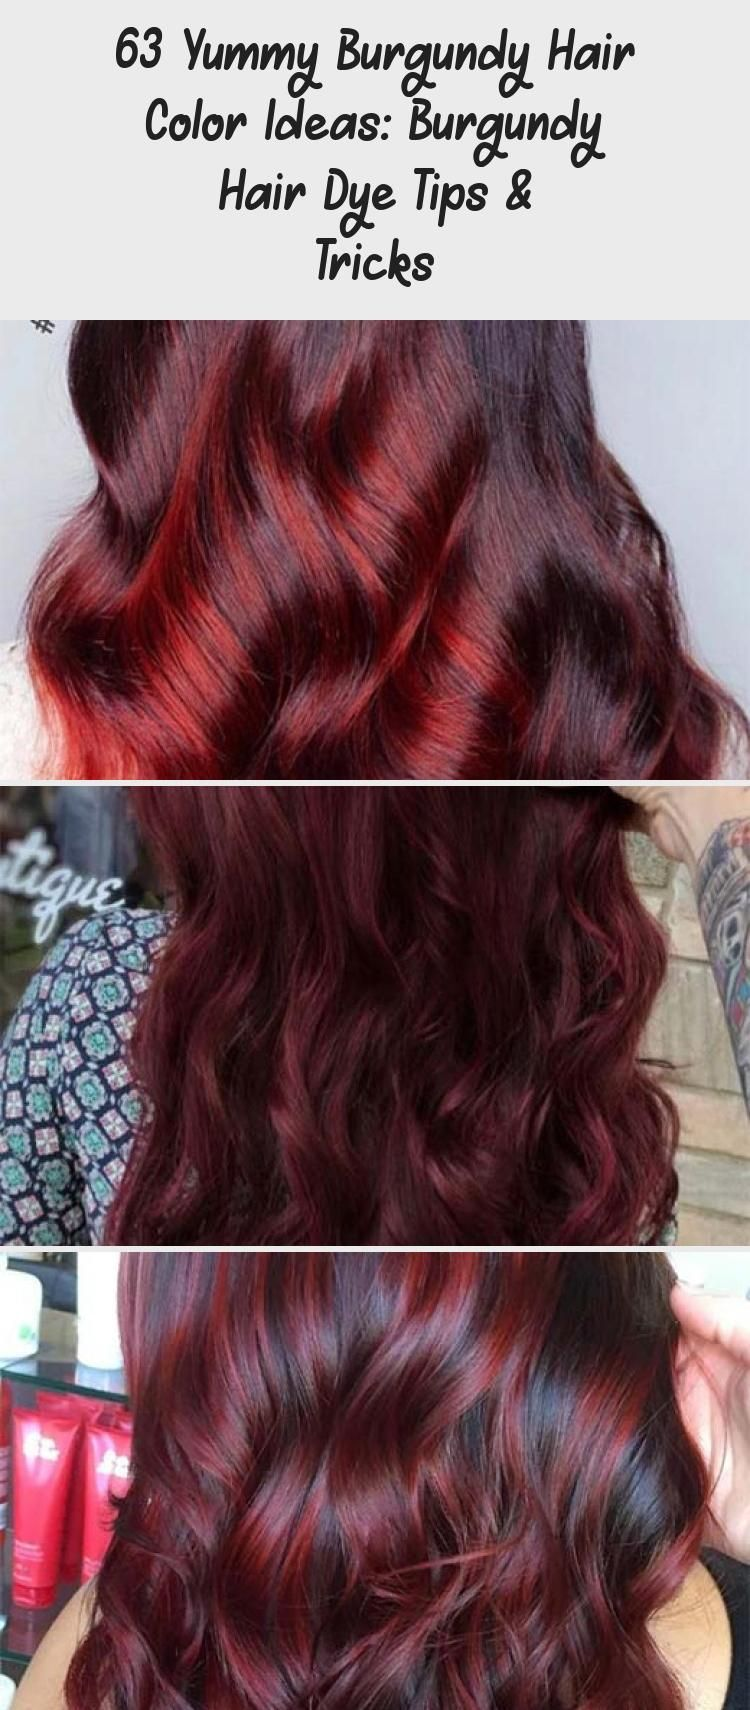 Burgundy Hair Color Shades Wine Maroon Burgundy Hair Dye Tips Burgundyhair Burgundy Hair Haircolor Ha In 2020 Burgundy Hair Hair Color Burgundy Wine Hair Color